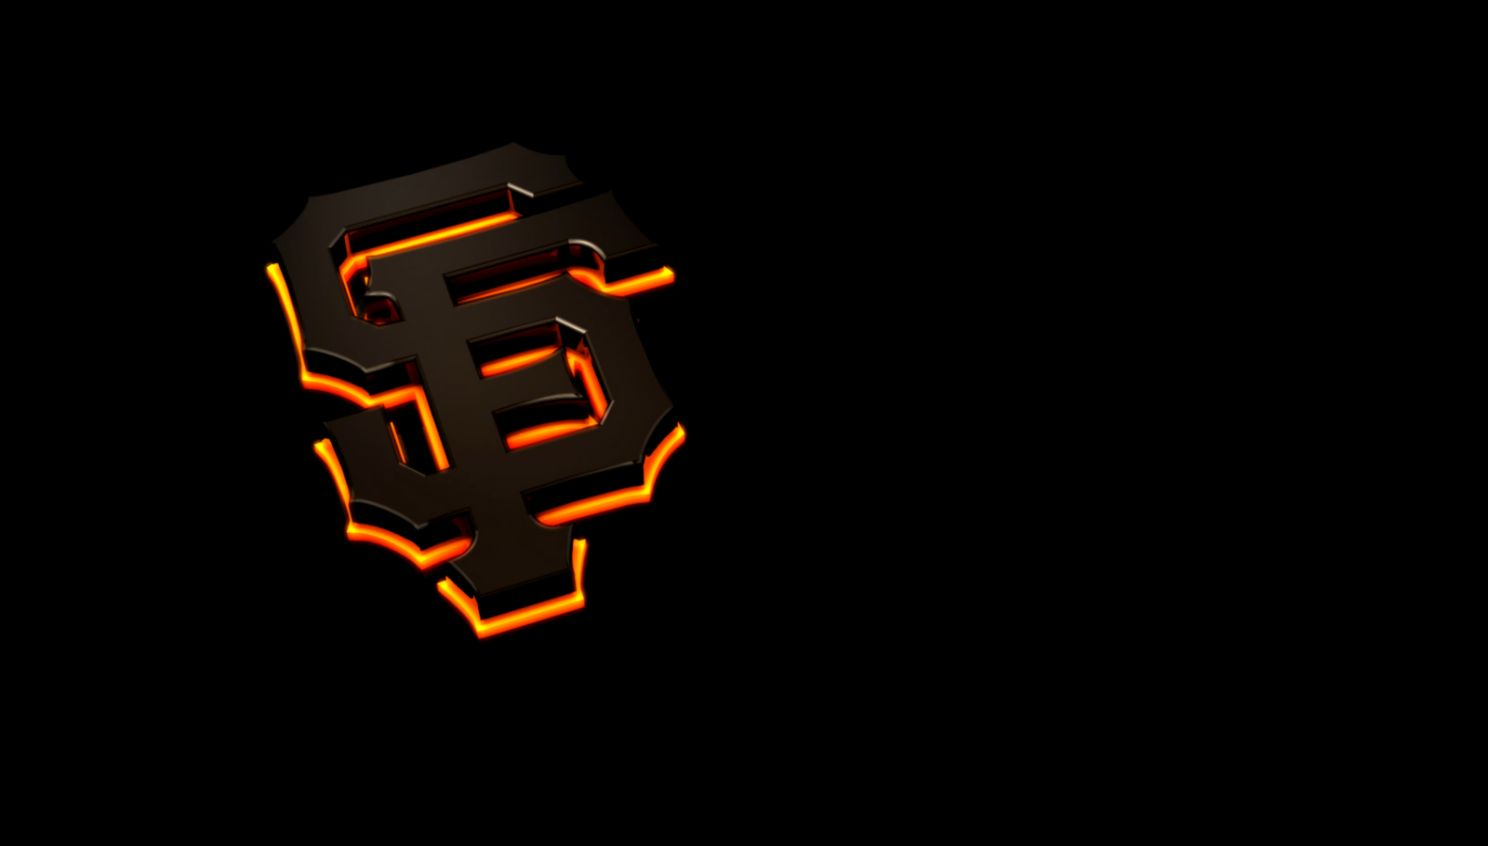 Magnificent San Francisco Giants Wallpaper